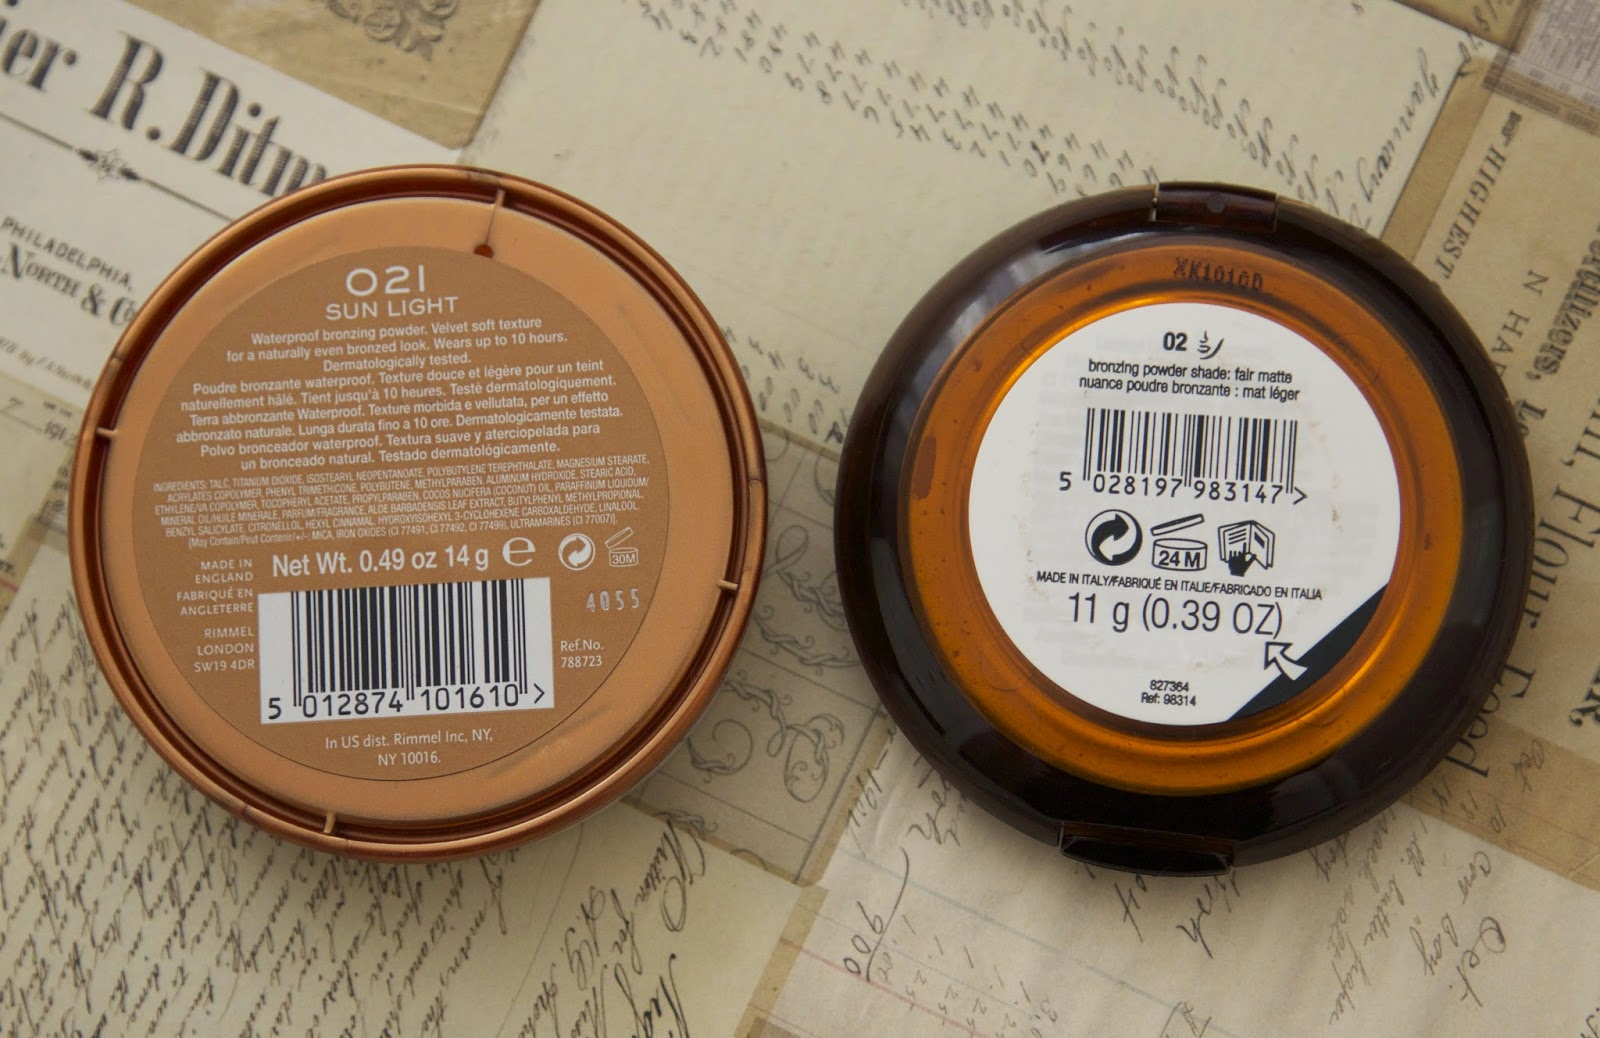 BODYSHOP HONEY BRONZE BRONZING POWDER VS RIMMEL NATURAL BRONZER REVIEW VS SWATCHES